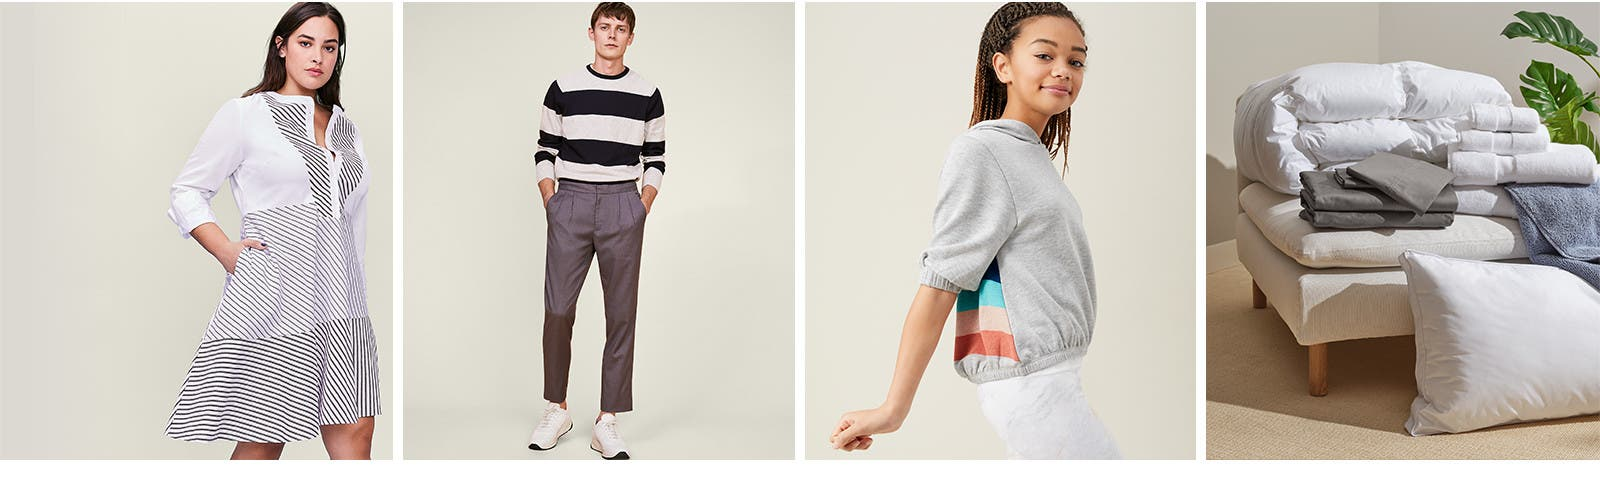 Nordstrom made: brands you'll only find here.